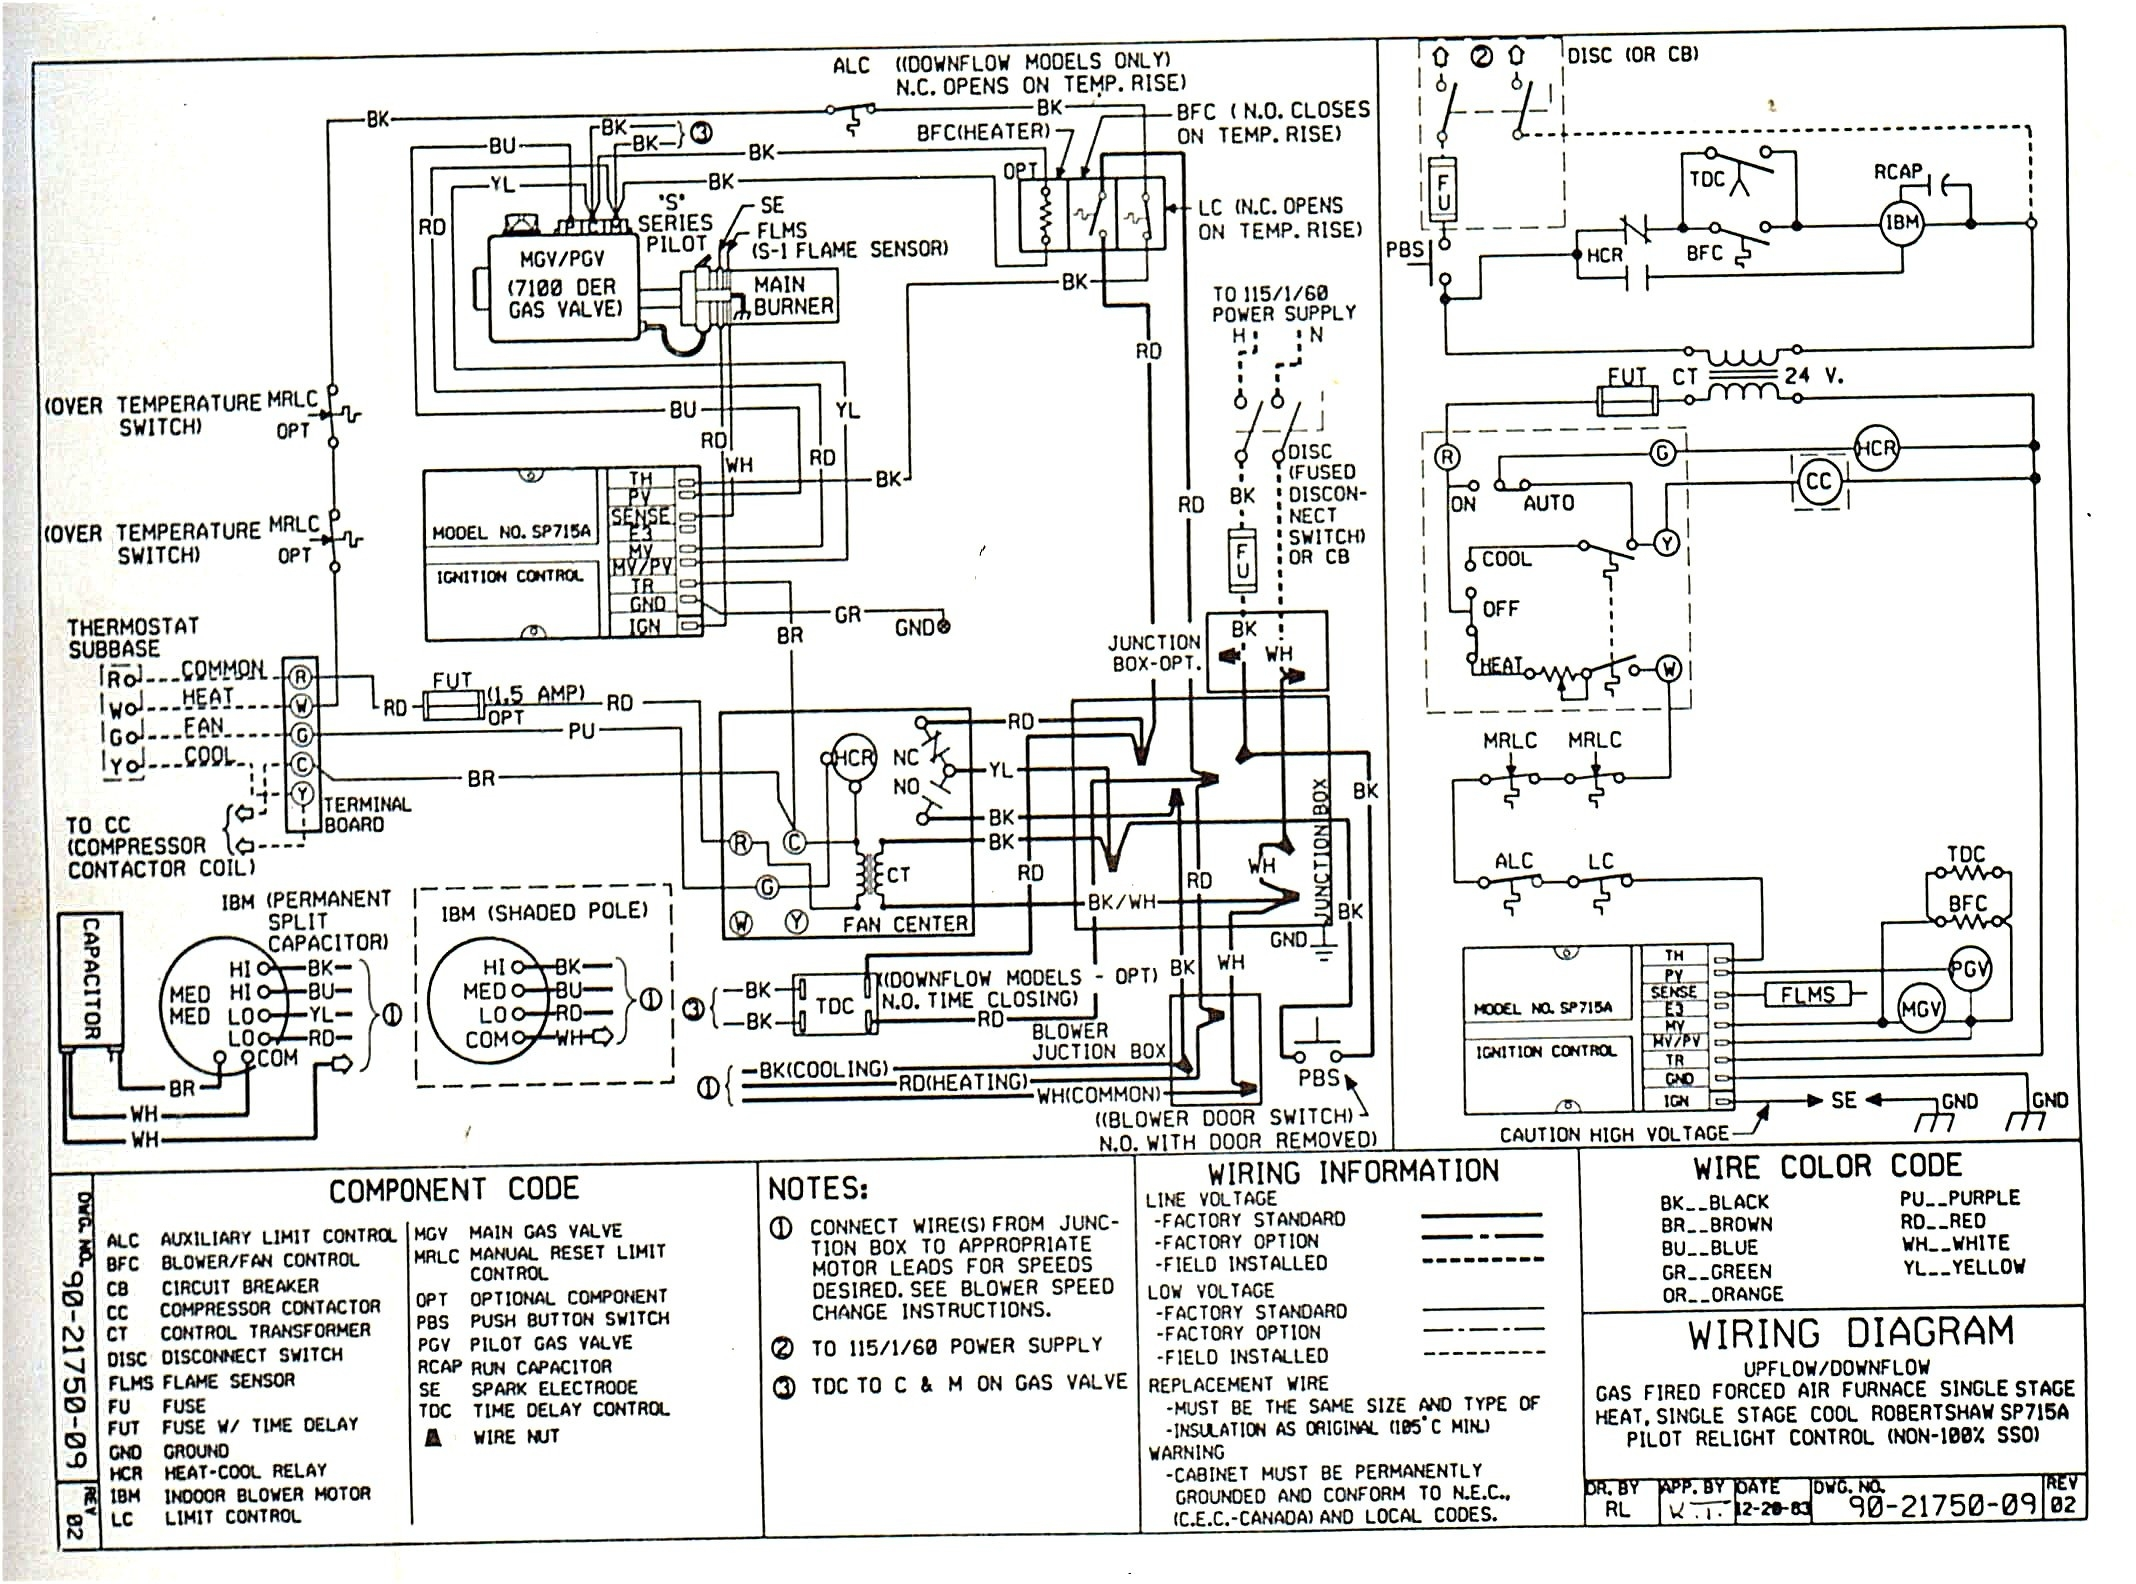 tempstar wiring diagram wiring diagram forwardwire diagram tempstar wiring diagrams the tempstar wiring diagram tempstar heat pump wiring diagram wiring diagram